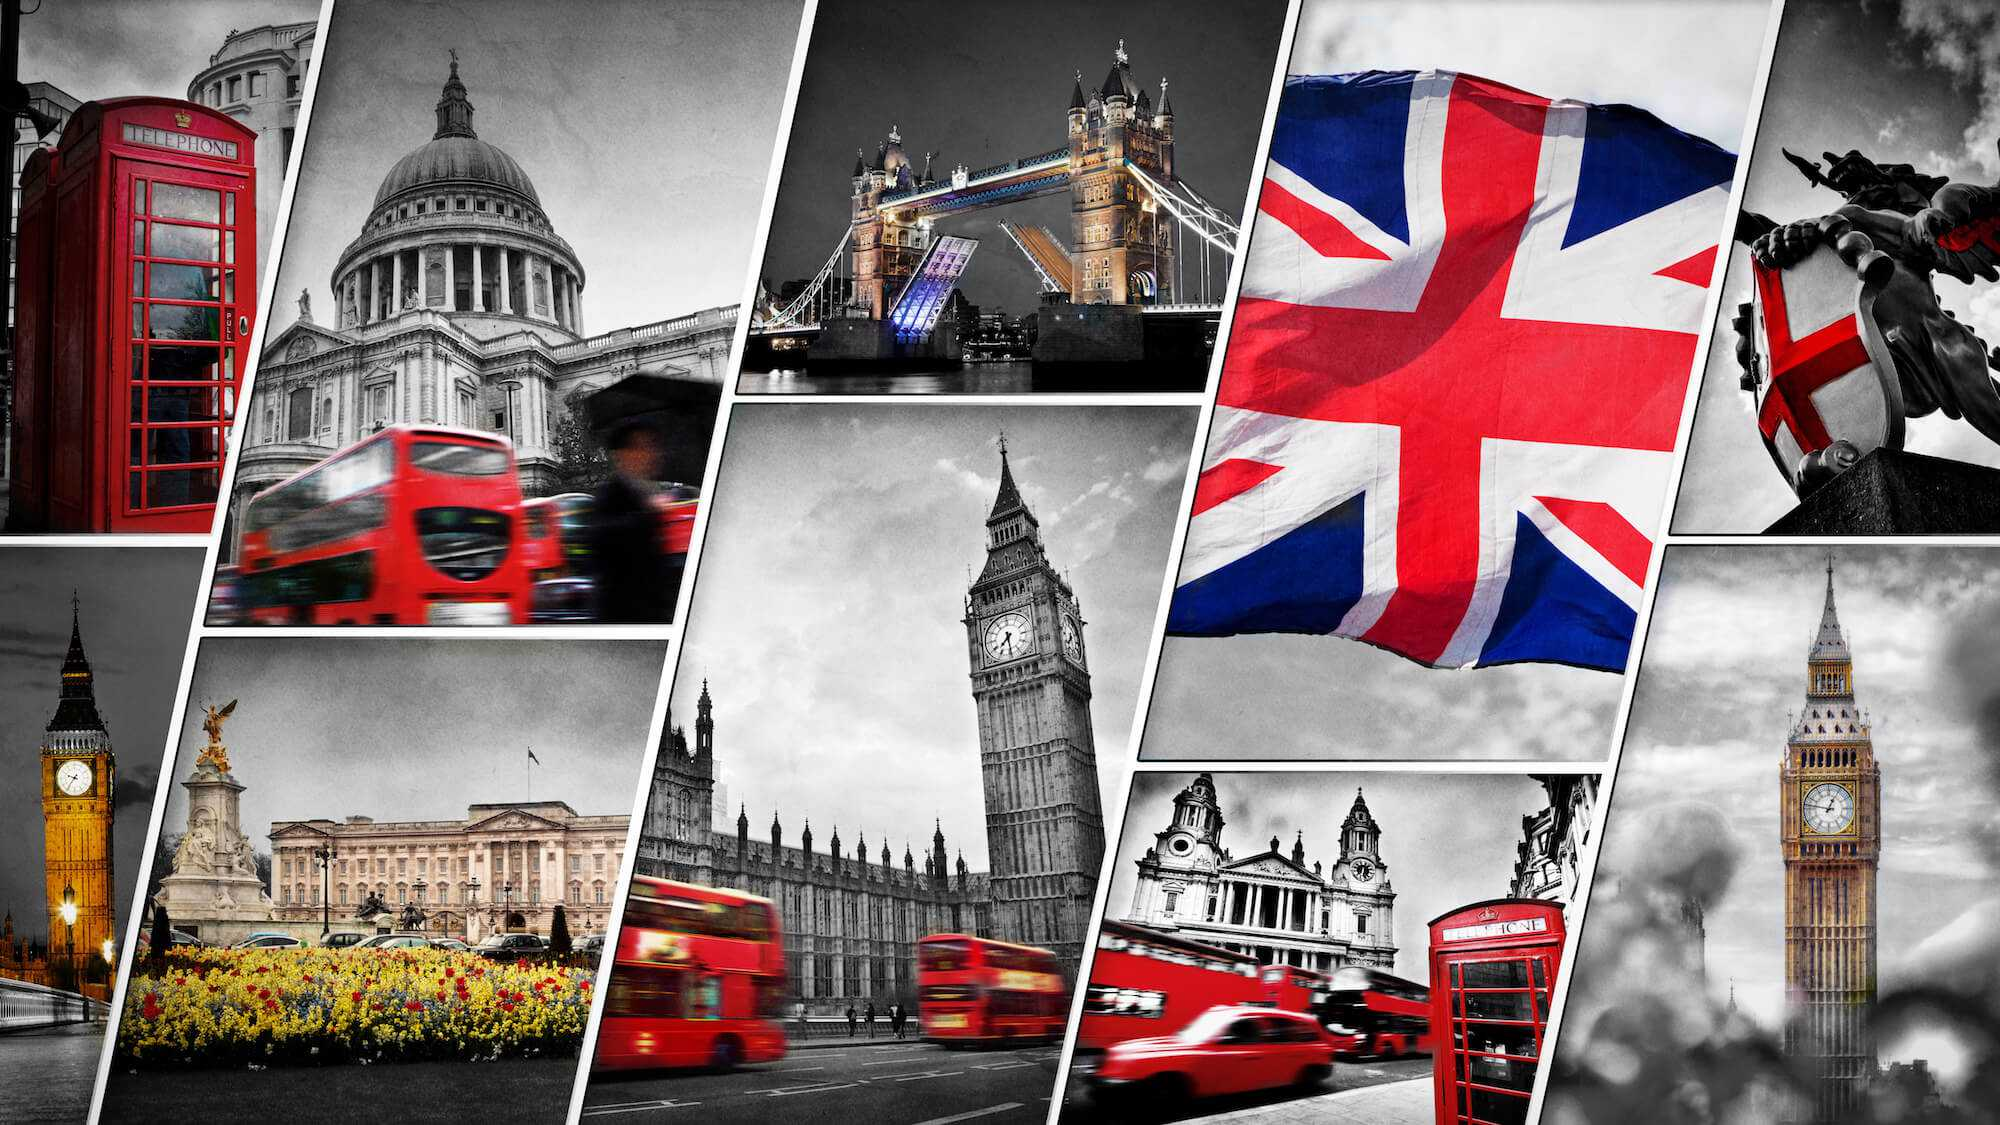 Letter Of Invitation For Friends And Family To Visit The UK